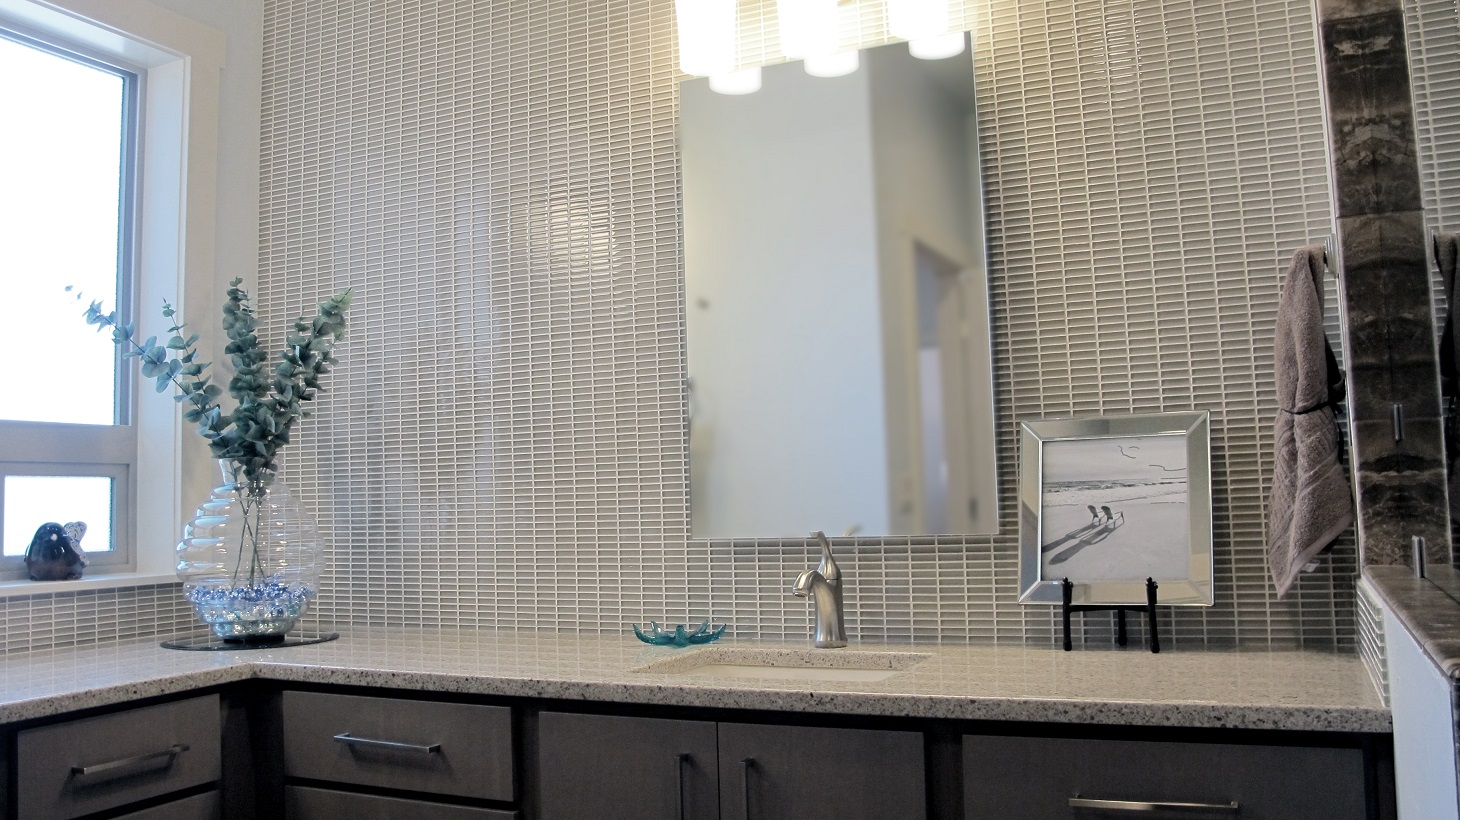 Master bathroom vanity quartz counter top chrome faucet glass mosaic feature wall mirror taupe grey